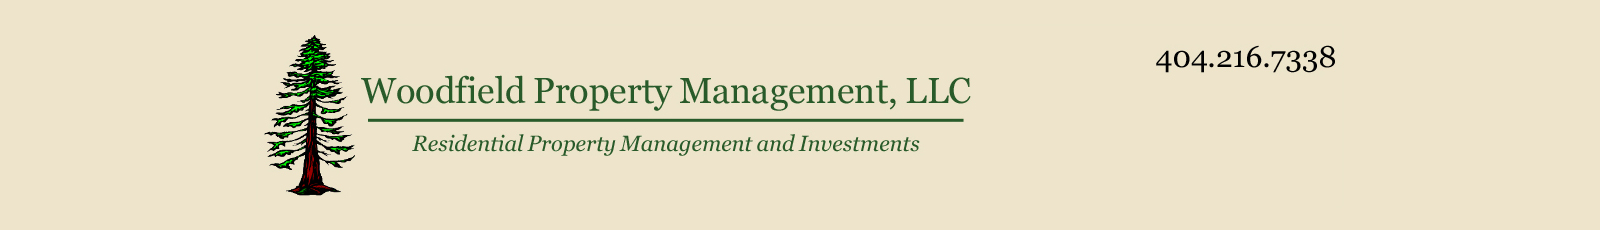 Woodfield Management Property Header